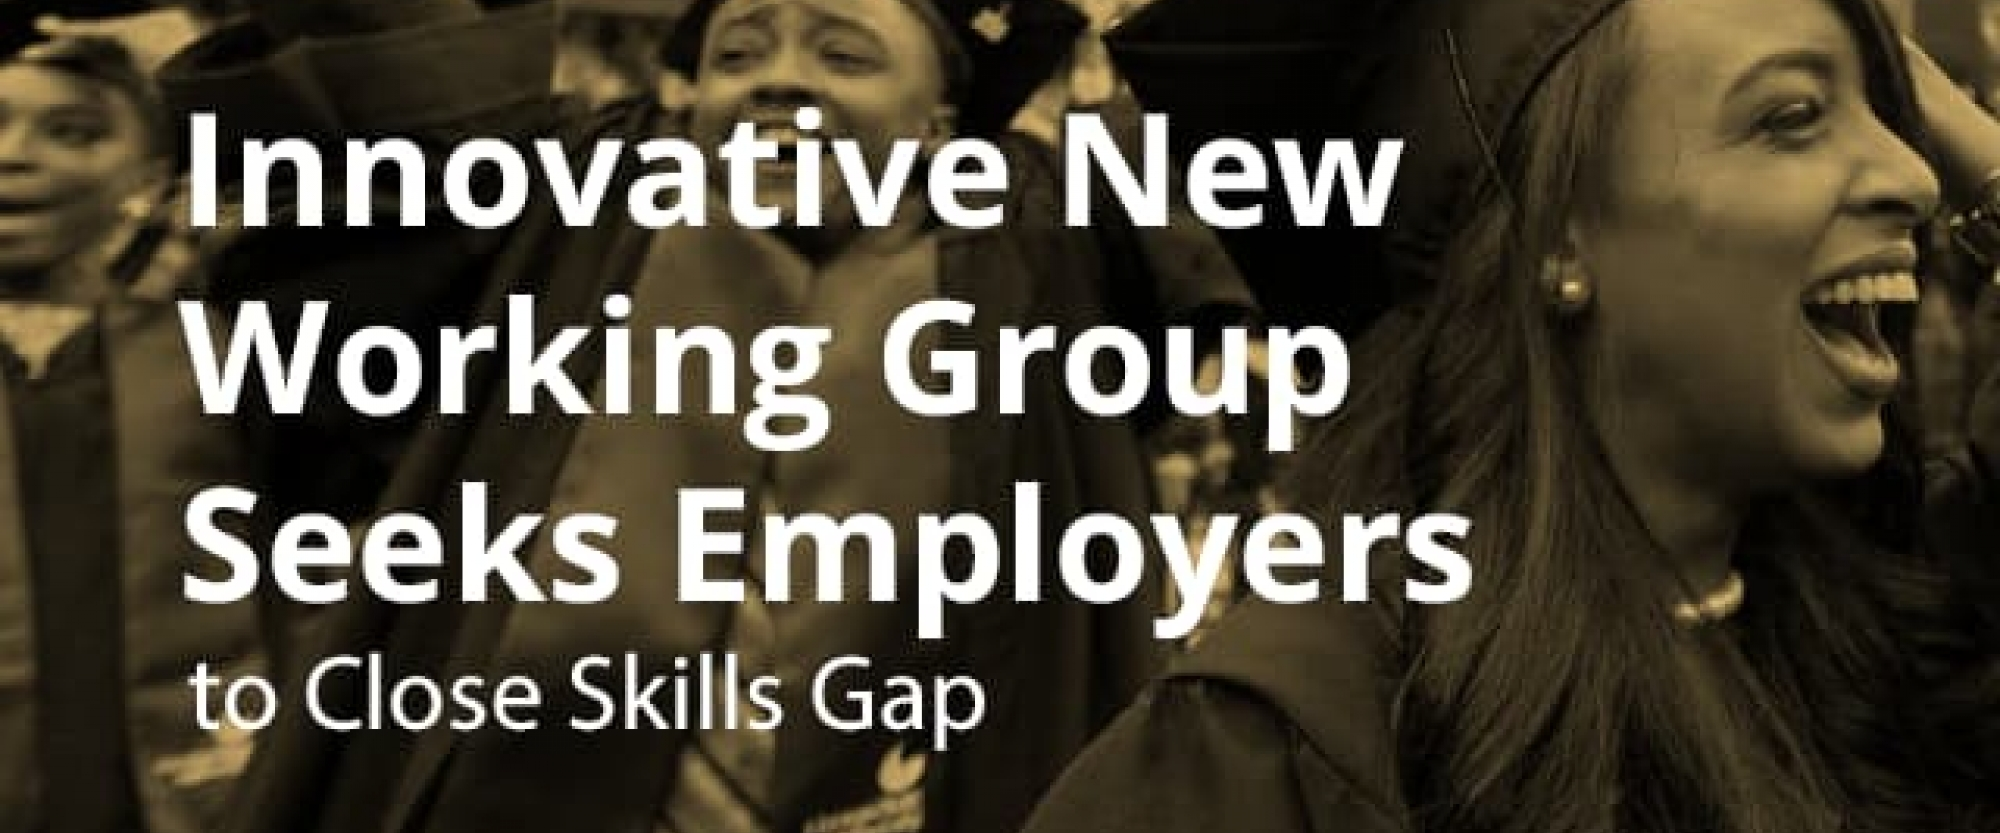 Innovative New Working Group Seeks Employers to Close Skills Gap